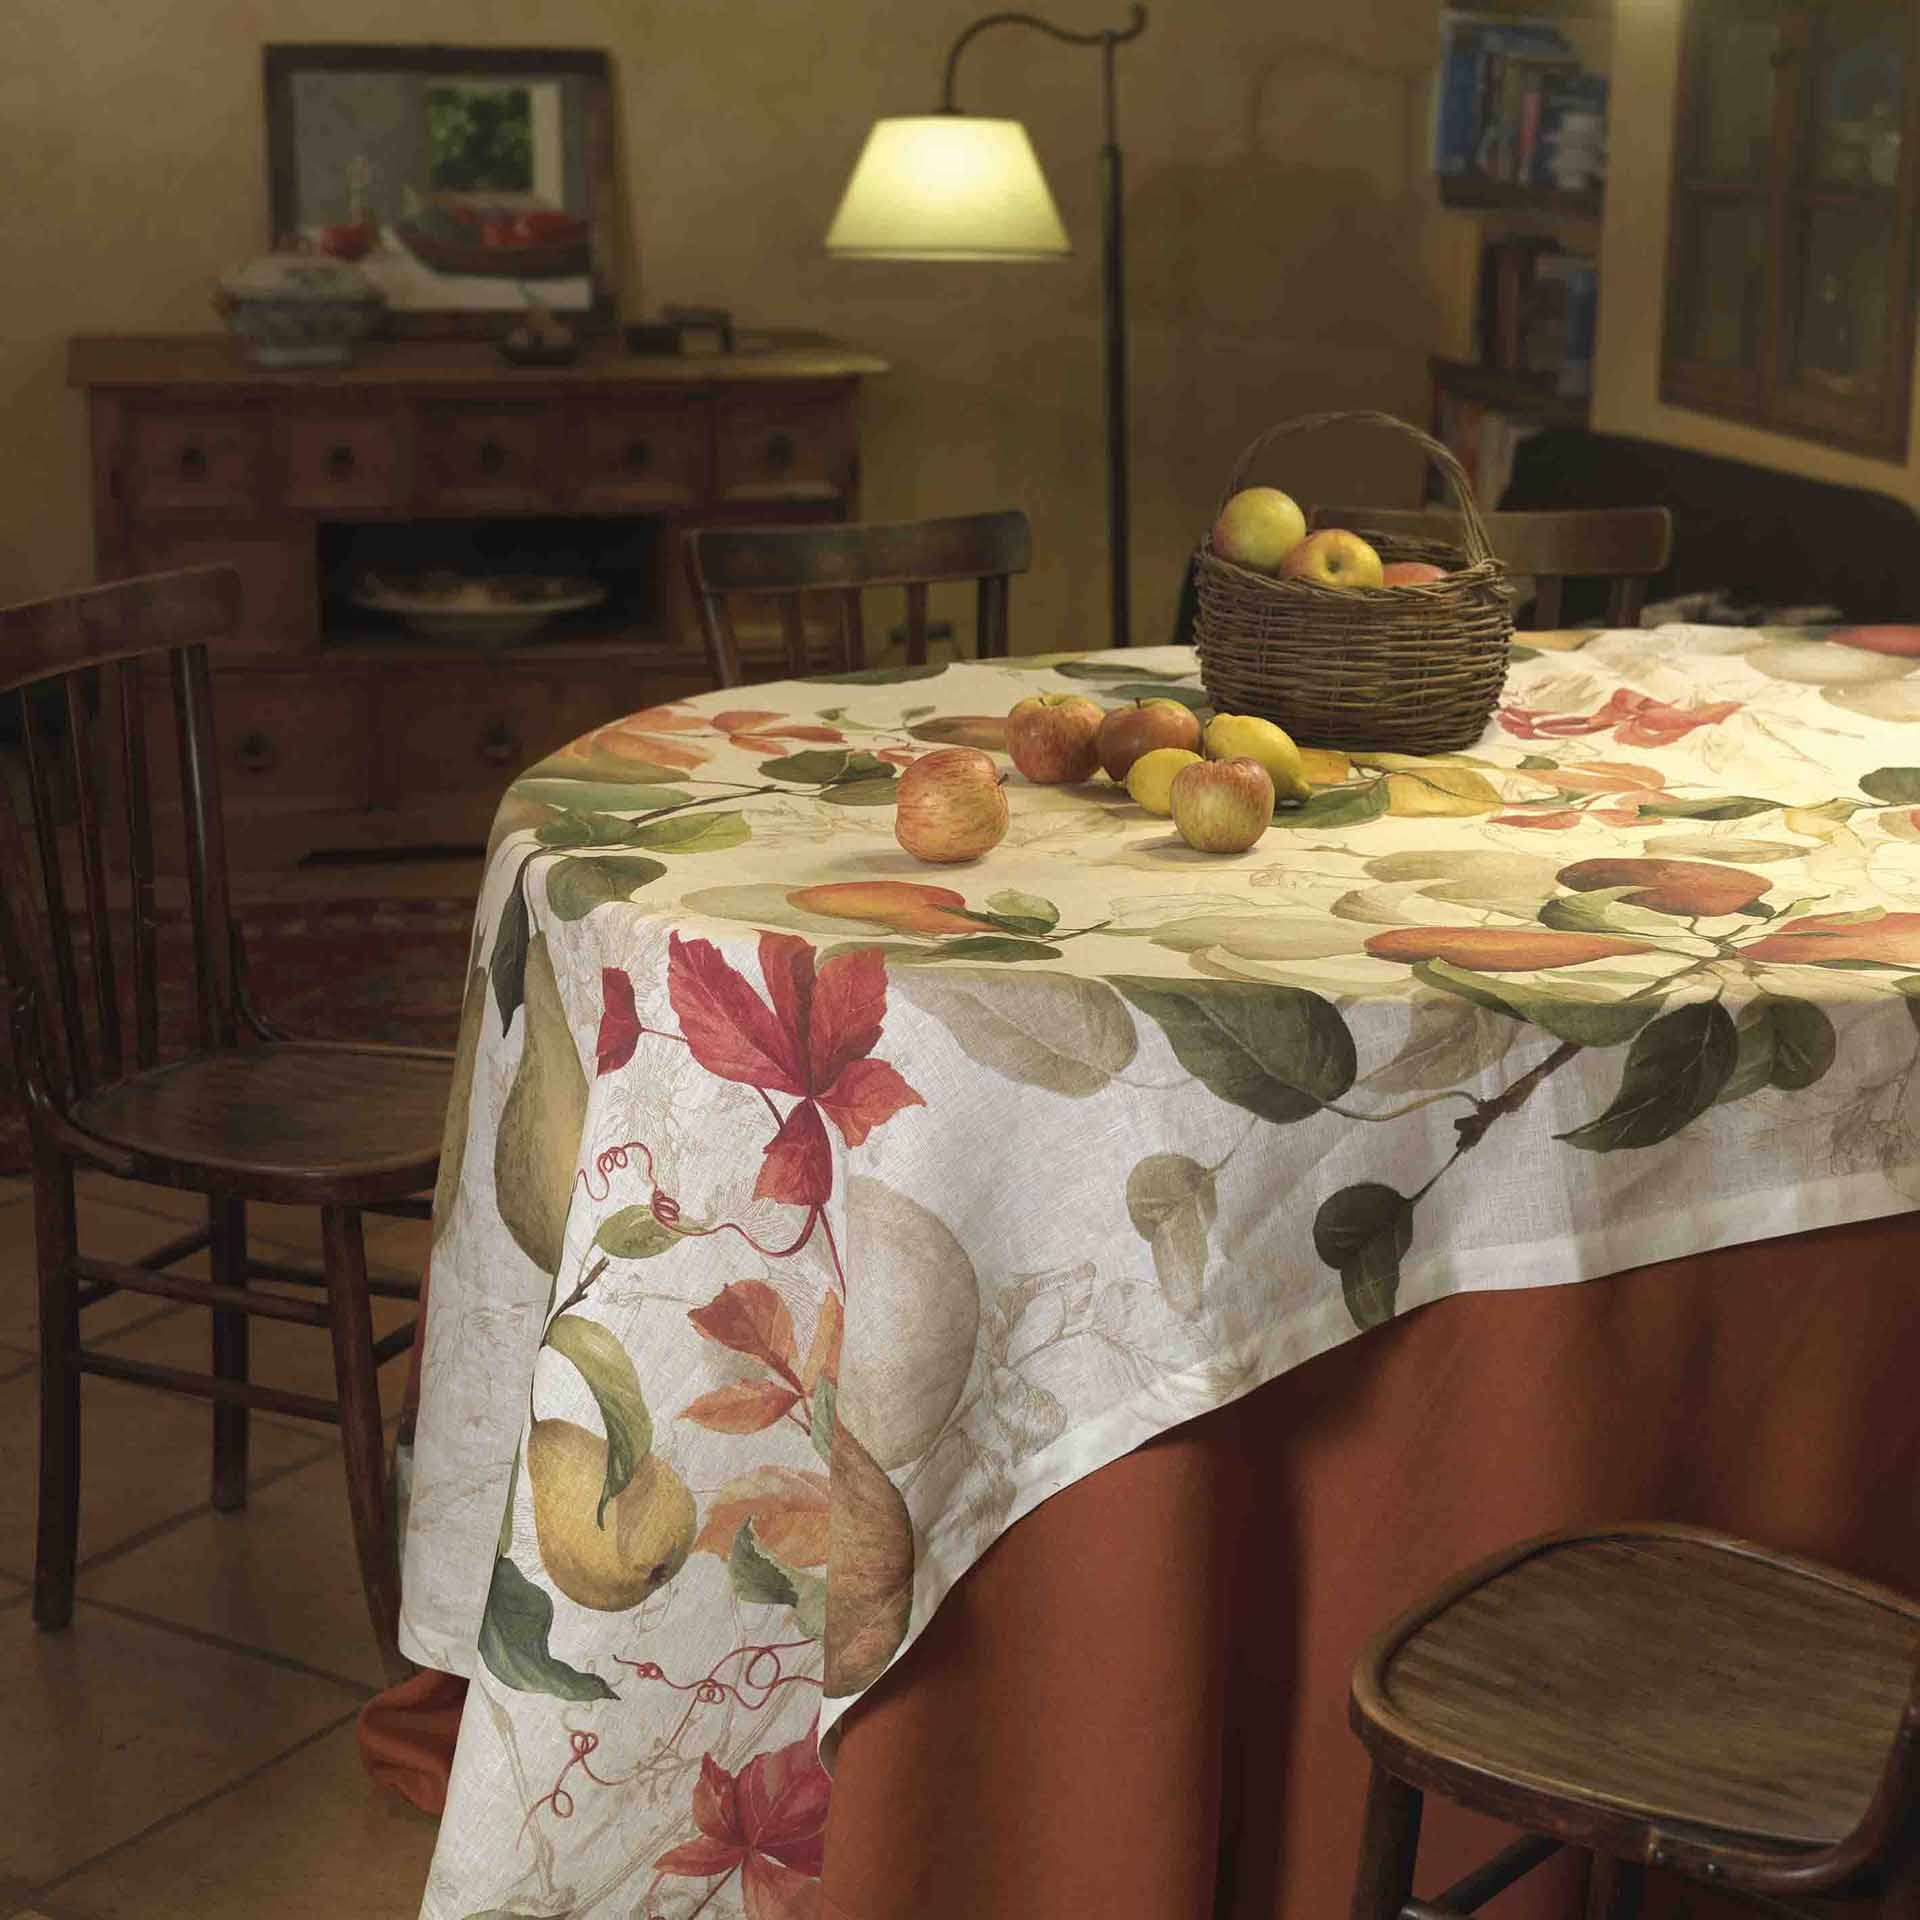 Calvados Linen Tablecloth Sizes 170x170cm, 160x230cm, 170x270cm, 170x310cm, 170cm Round